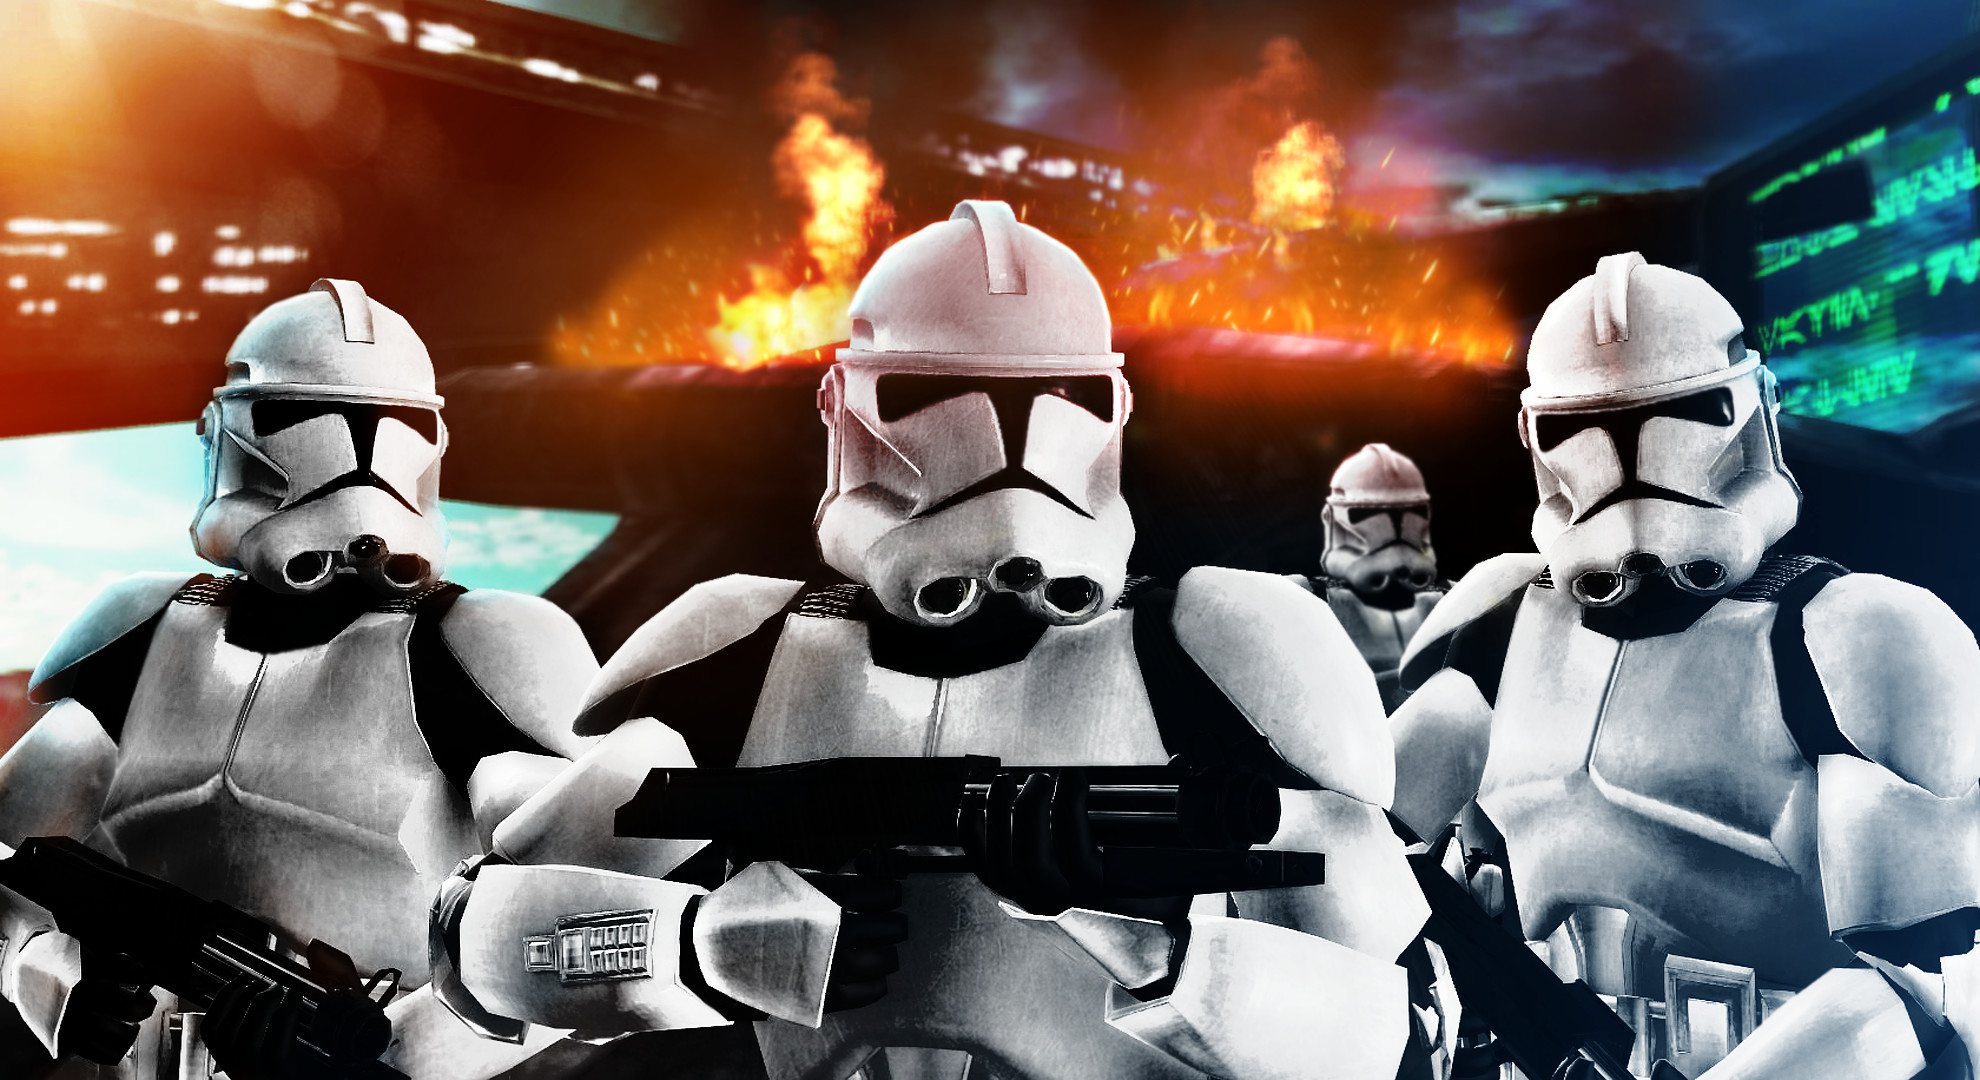 Clone Troopers by Lord.